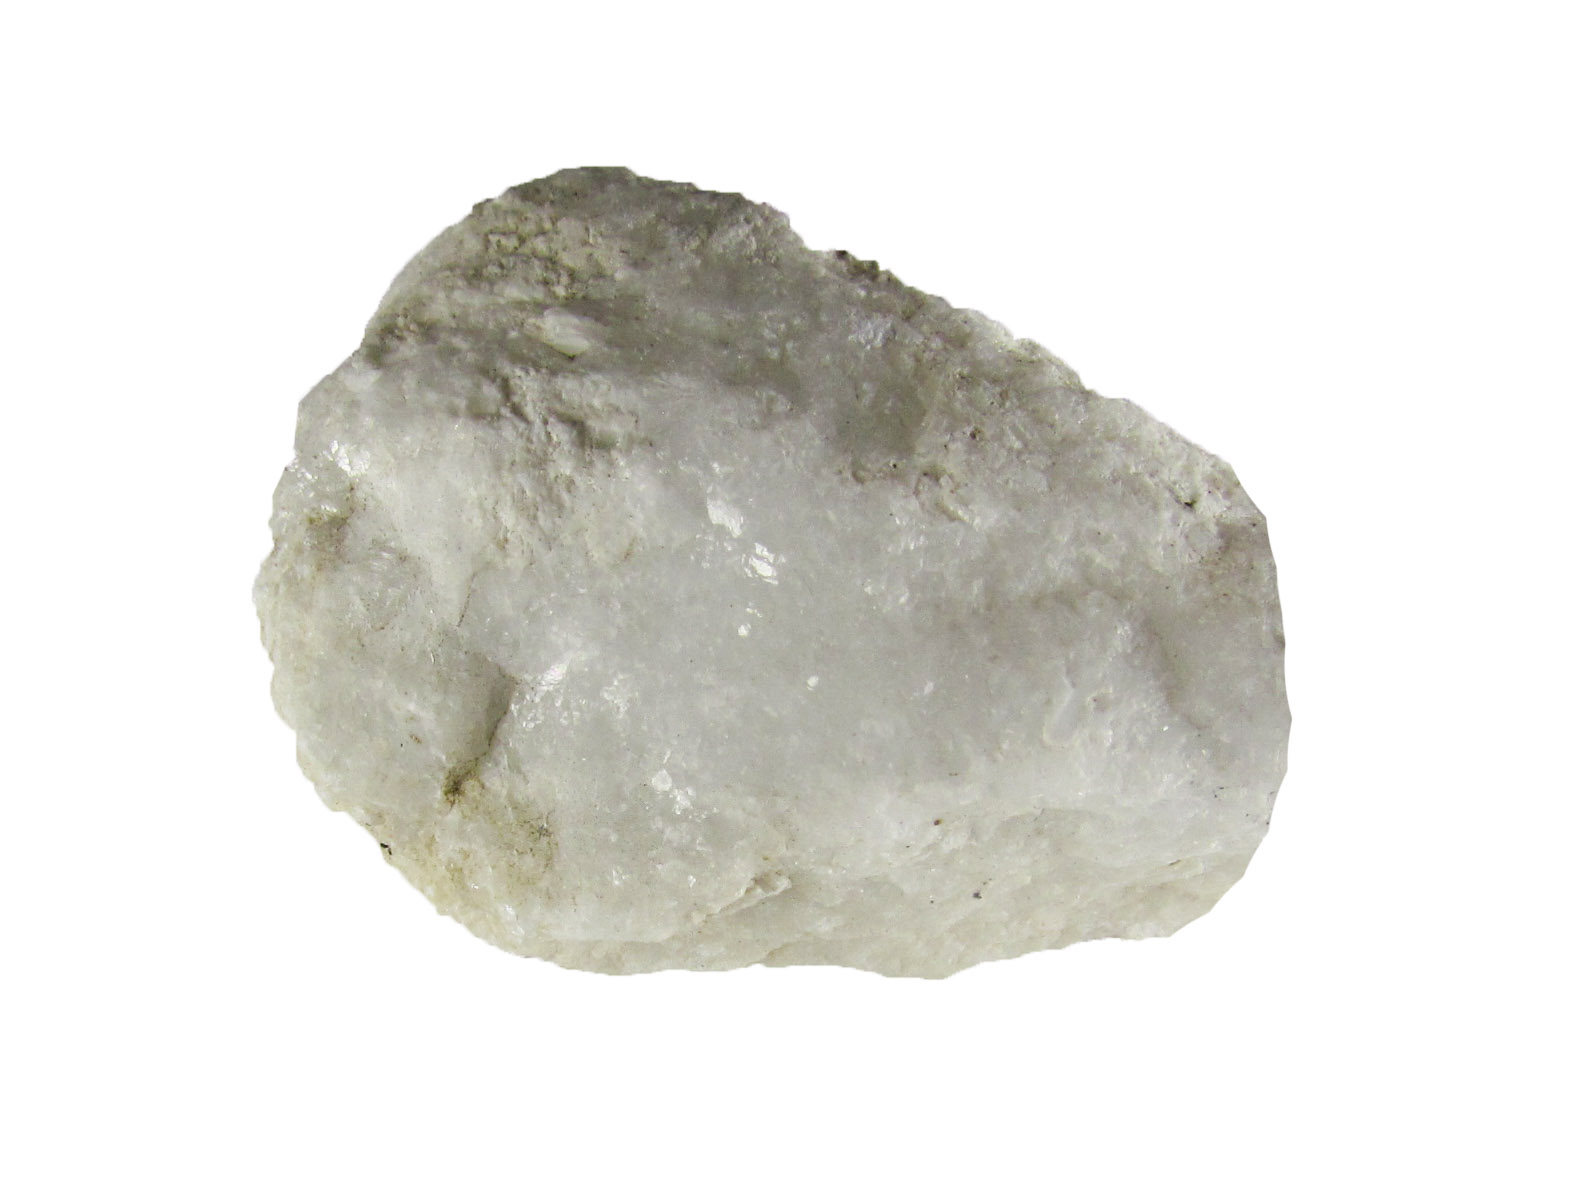 Limestone is a very common type of sedimentary rock